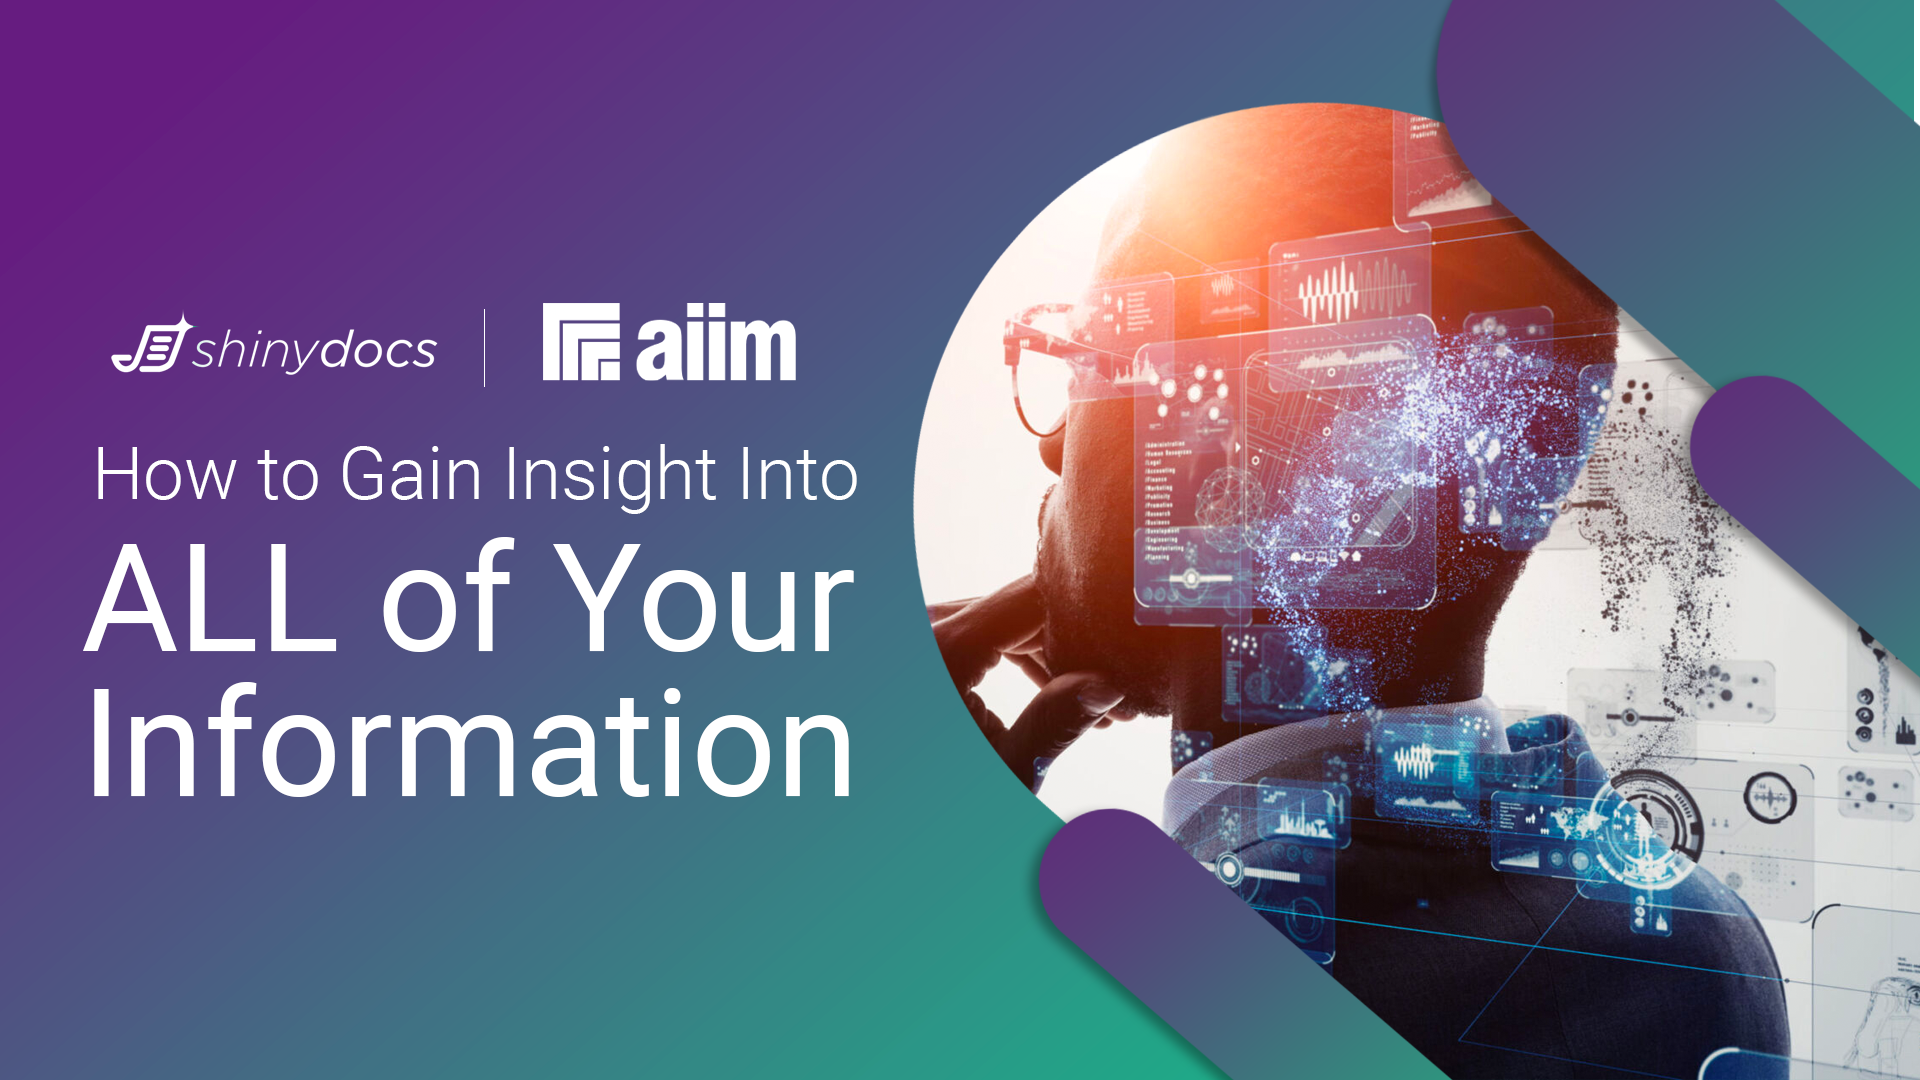 AIIM Webinar: How to Gain Insight into ALL Your Information